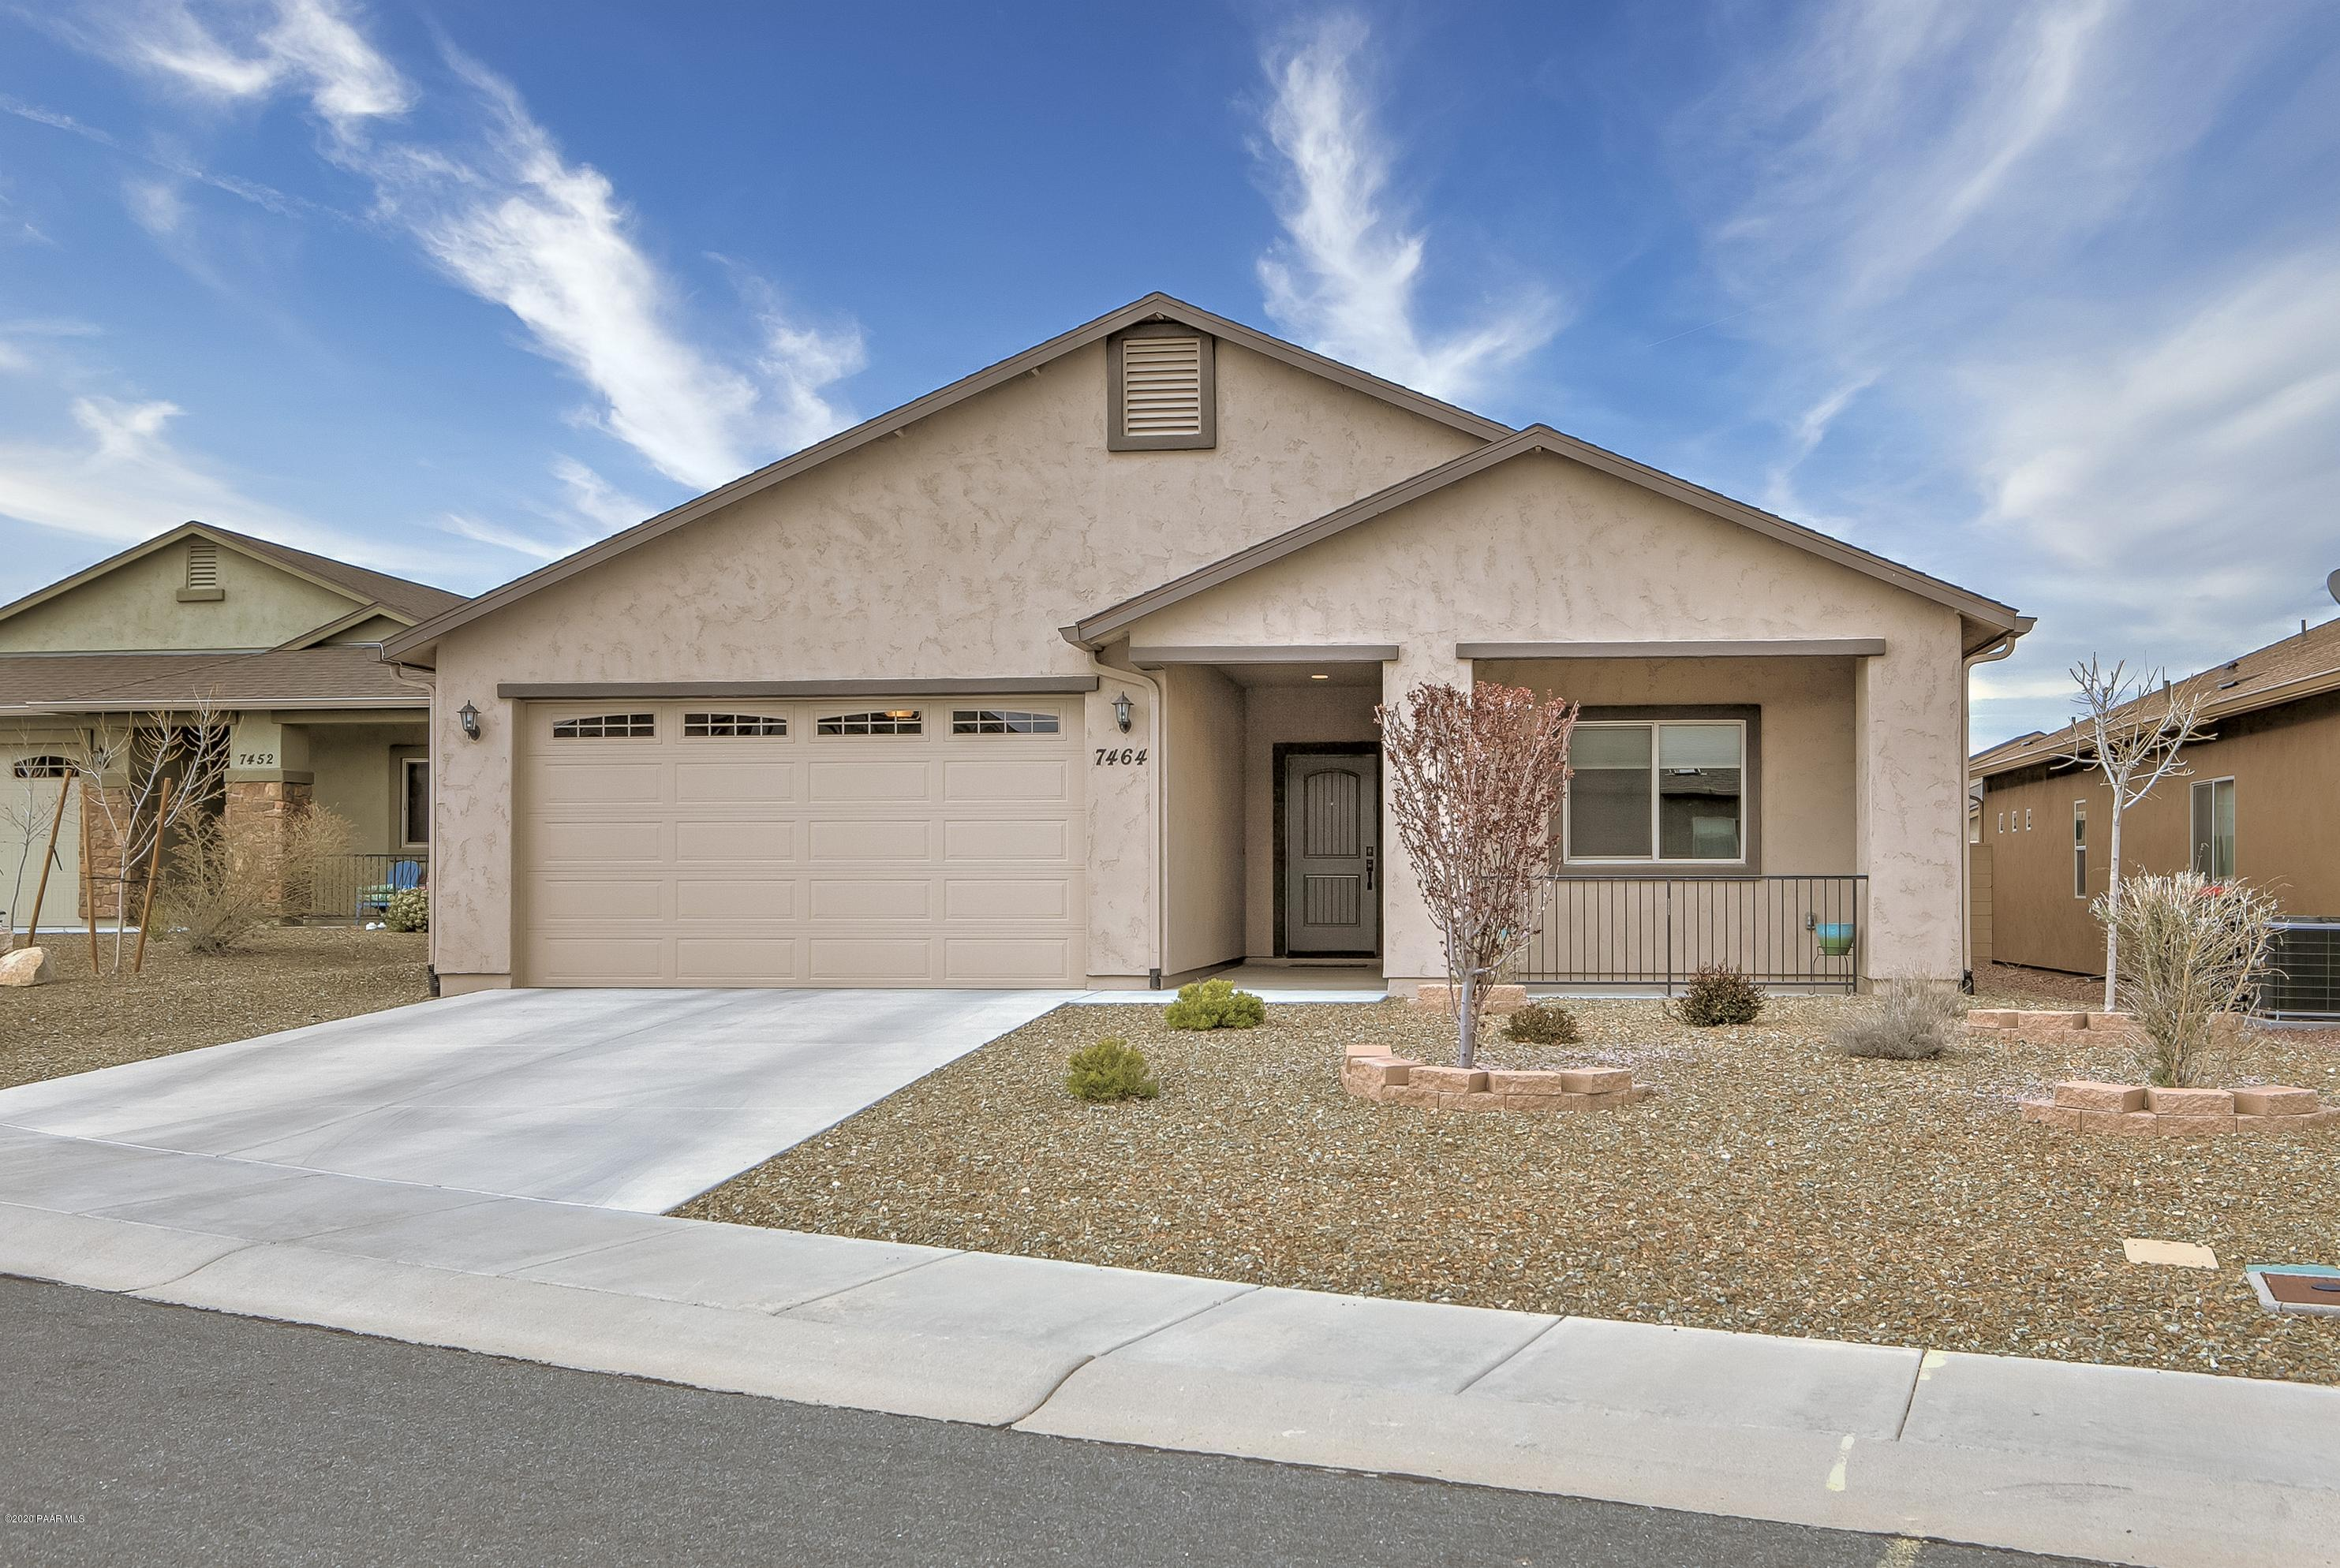 7464 E Raywood Street, Prescott Valley Az 86315